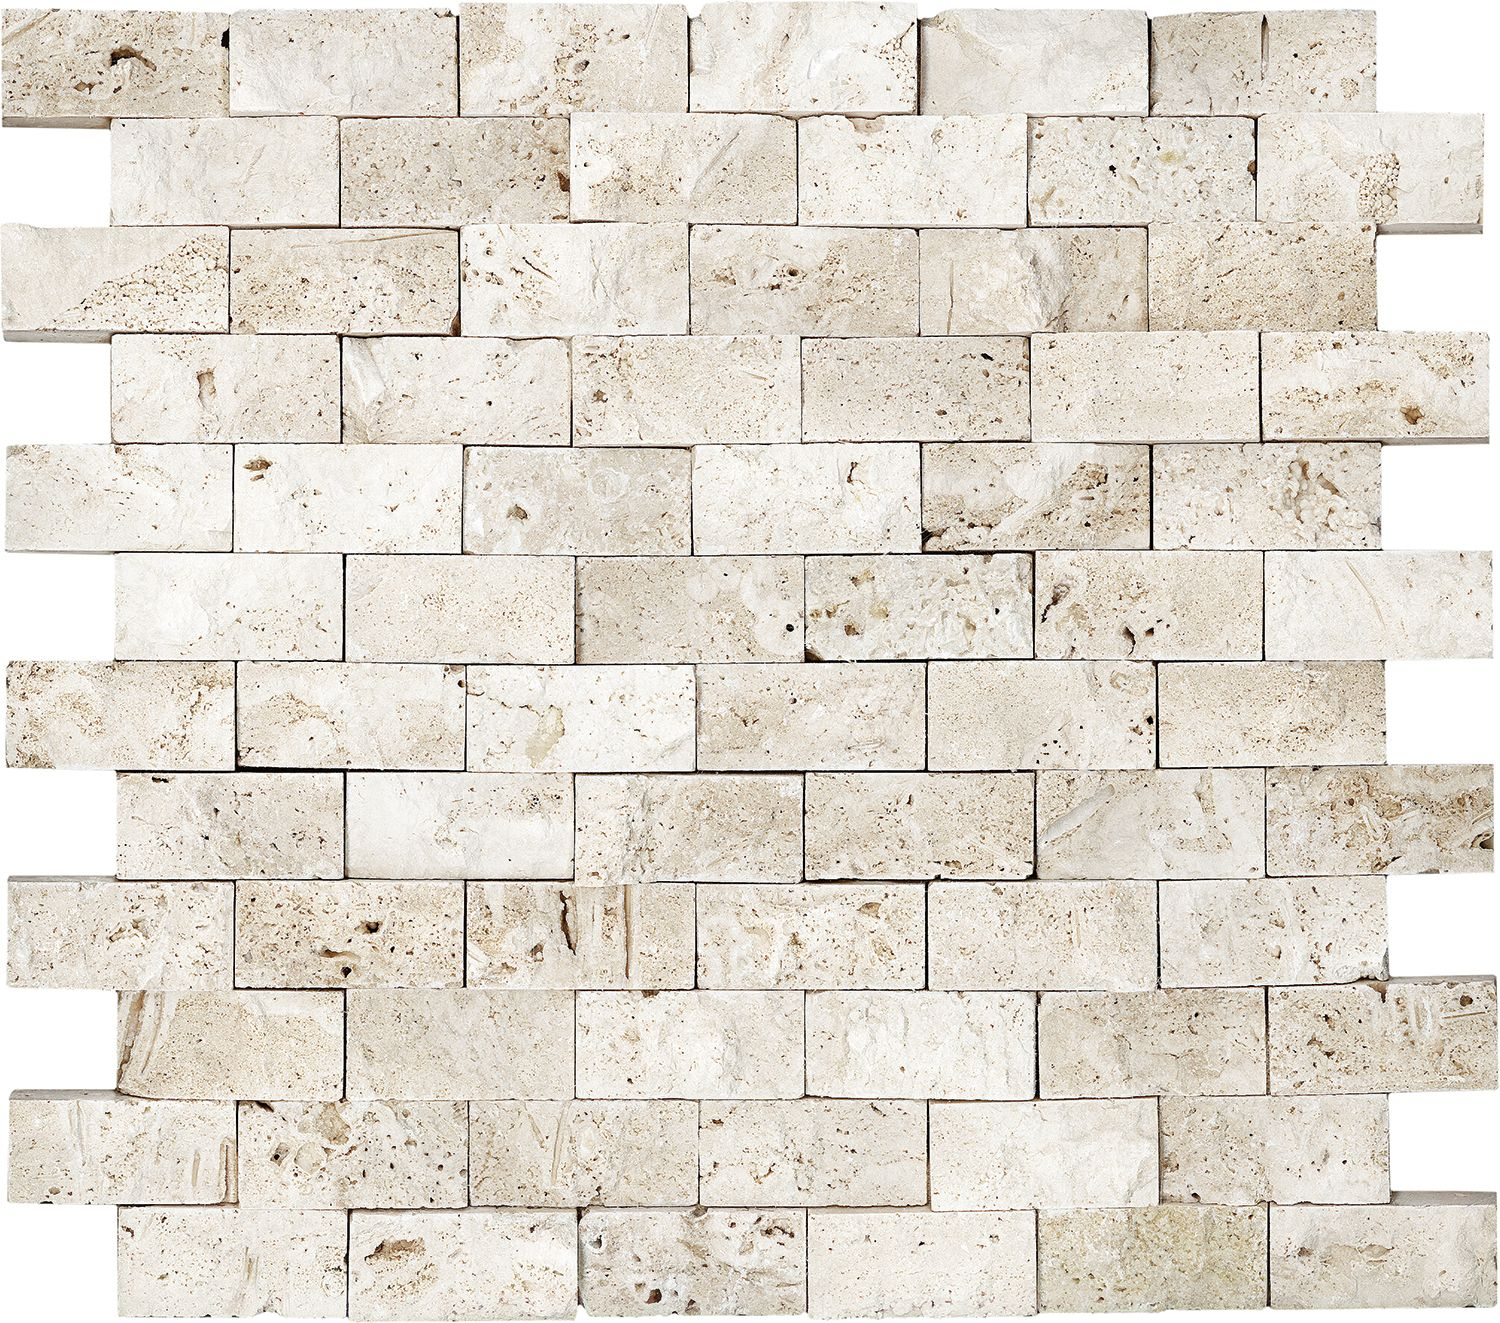 anatolia tile ivory brick mosaic natural stone travertine wall tile common 12 in x 12 in. Black Bedroom Furniture Sets. Home Design Ideas